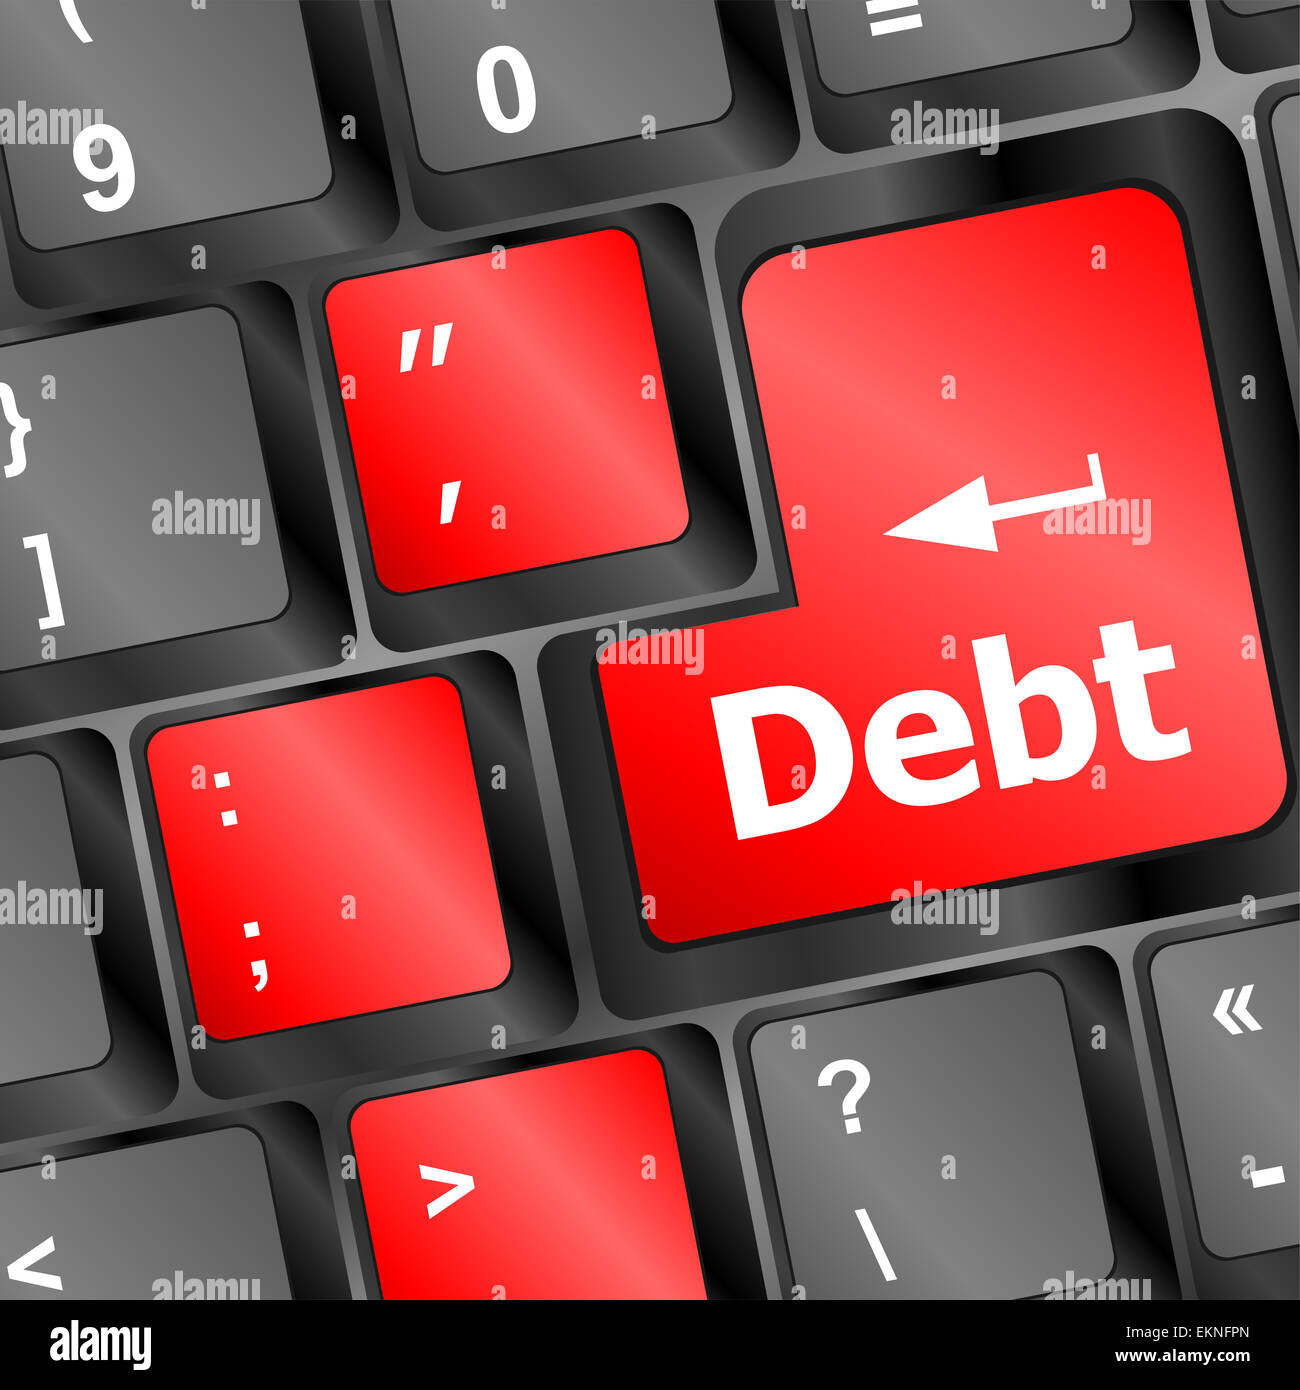 Debt red button on computer keyboard key - Stock Image